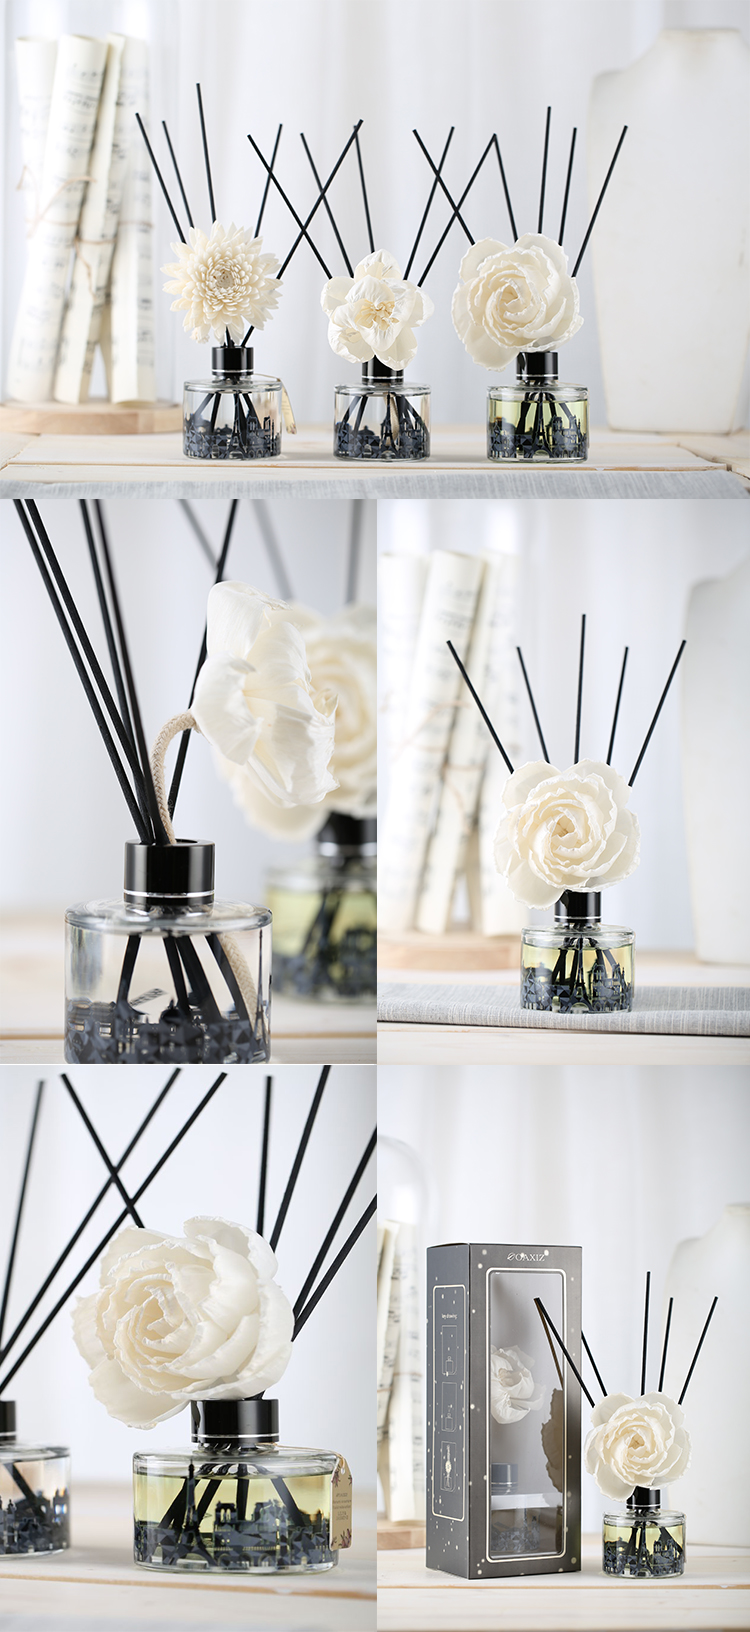 Gift Design Eyun Fragranc Reed Diffuser Set Packaging with Natural Sticks